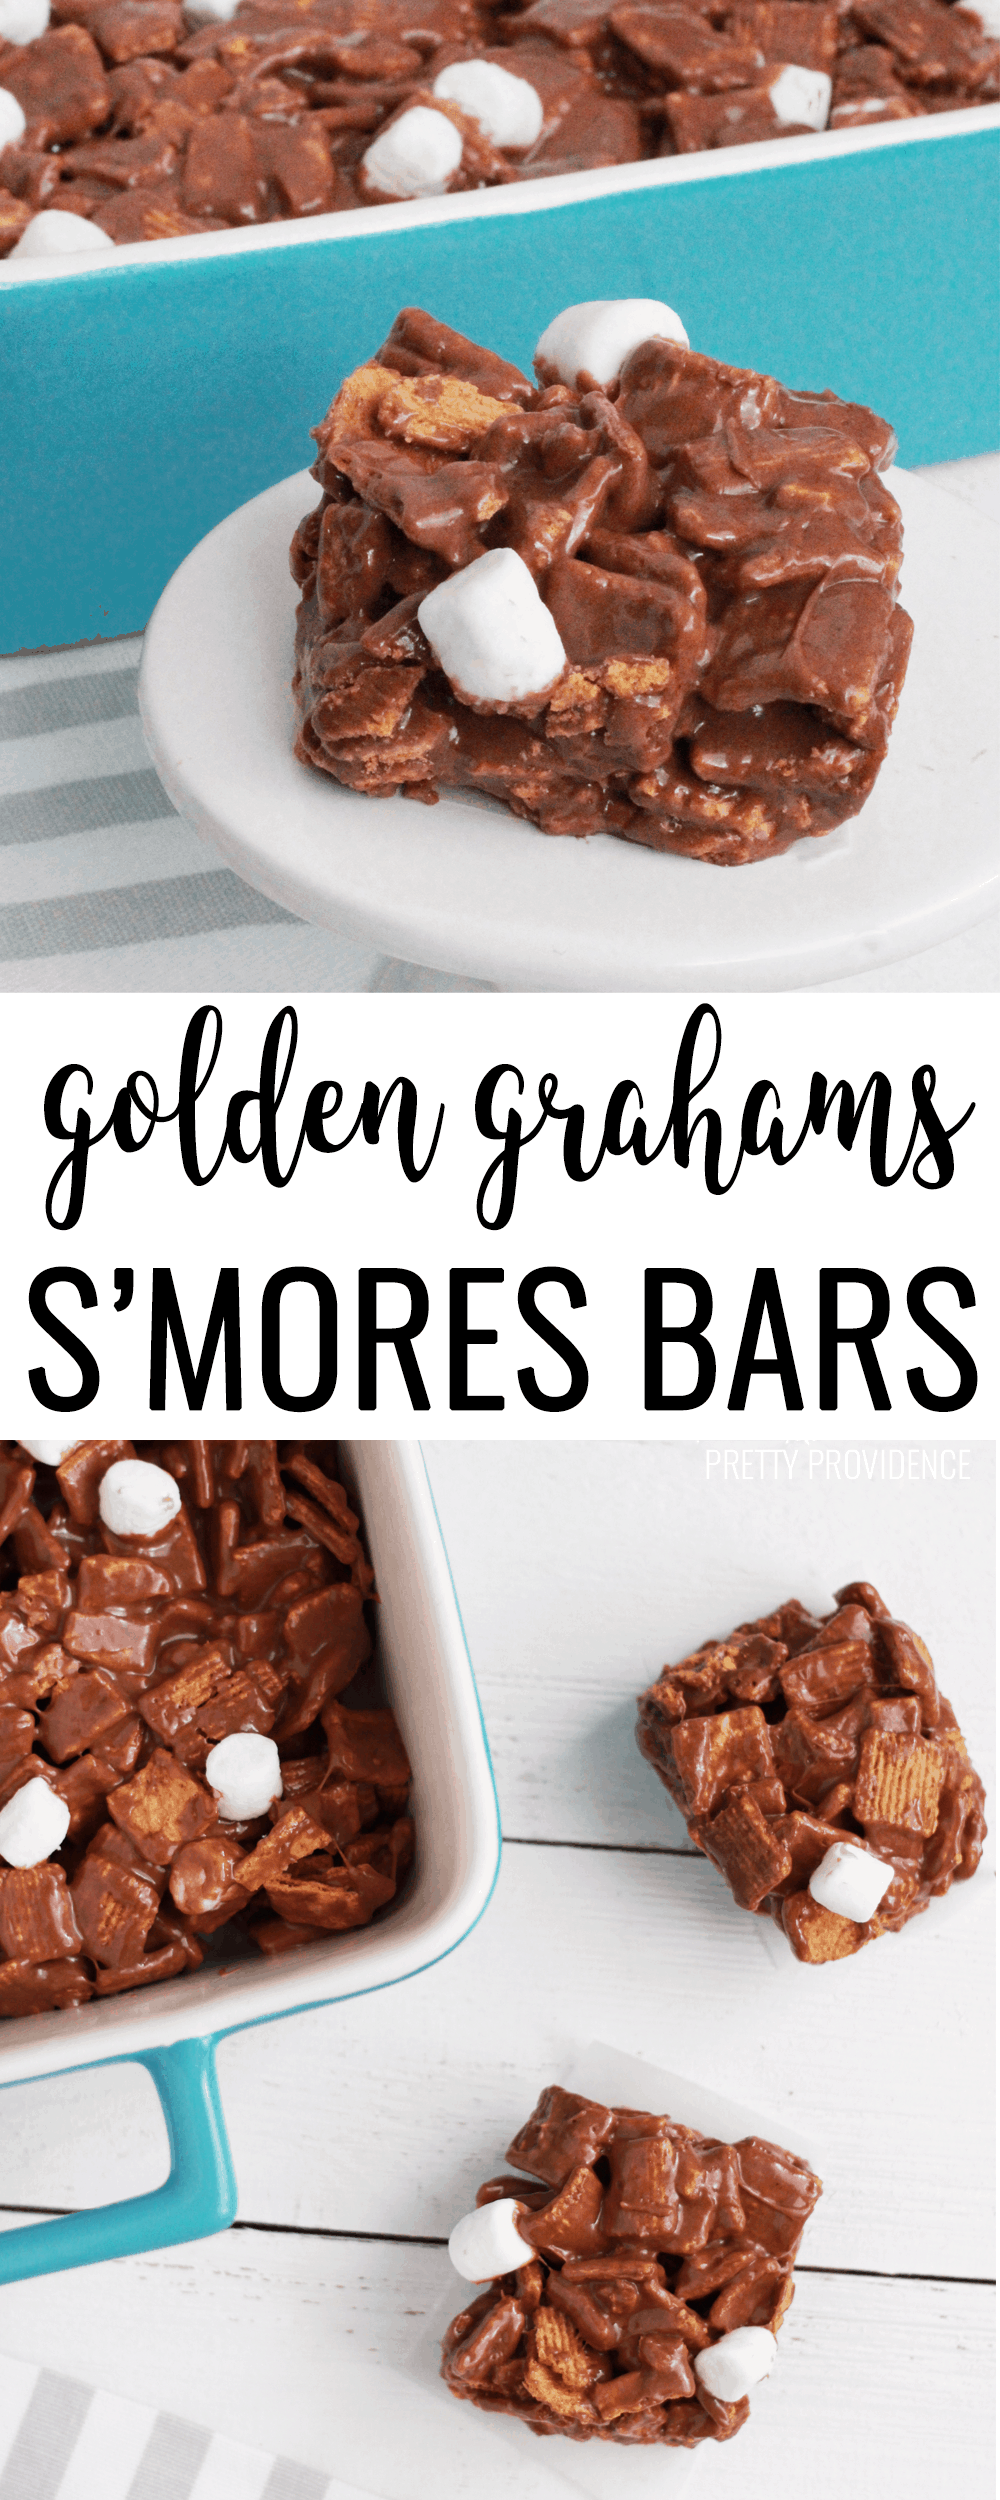 These S'mores bars with marshmallow, chocolate and golden grahams are TO DIE FOR!